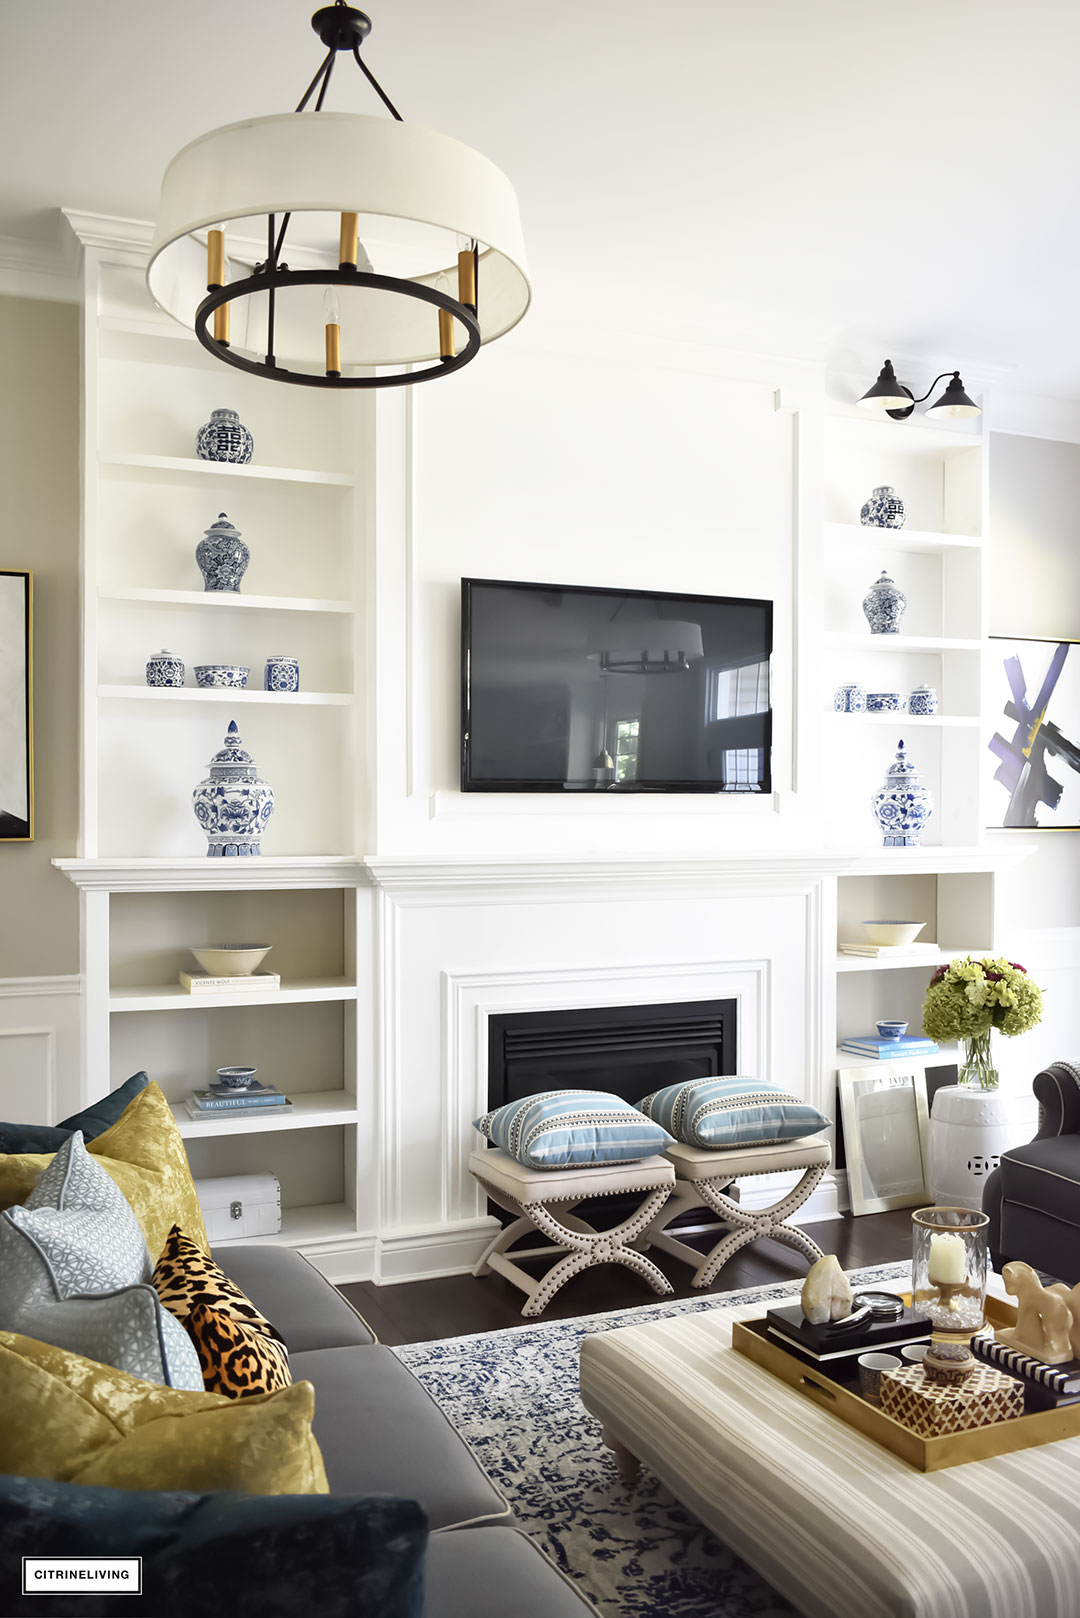 Fall Home Tour featuring this elegant living room with sophisticated navy and gold accents, drum shade chandeliers, gray sofas and blue and white accessories. Blue vintage style rug. Built in bookshelves.